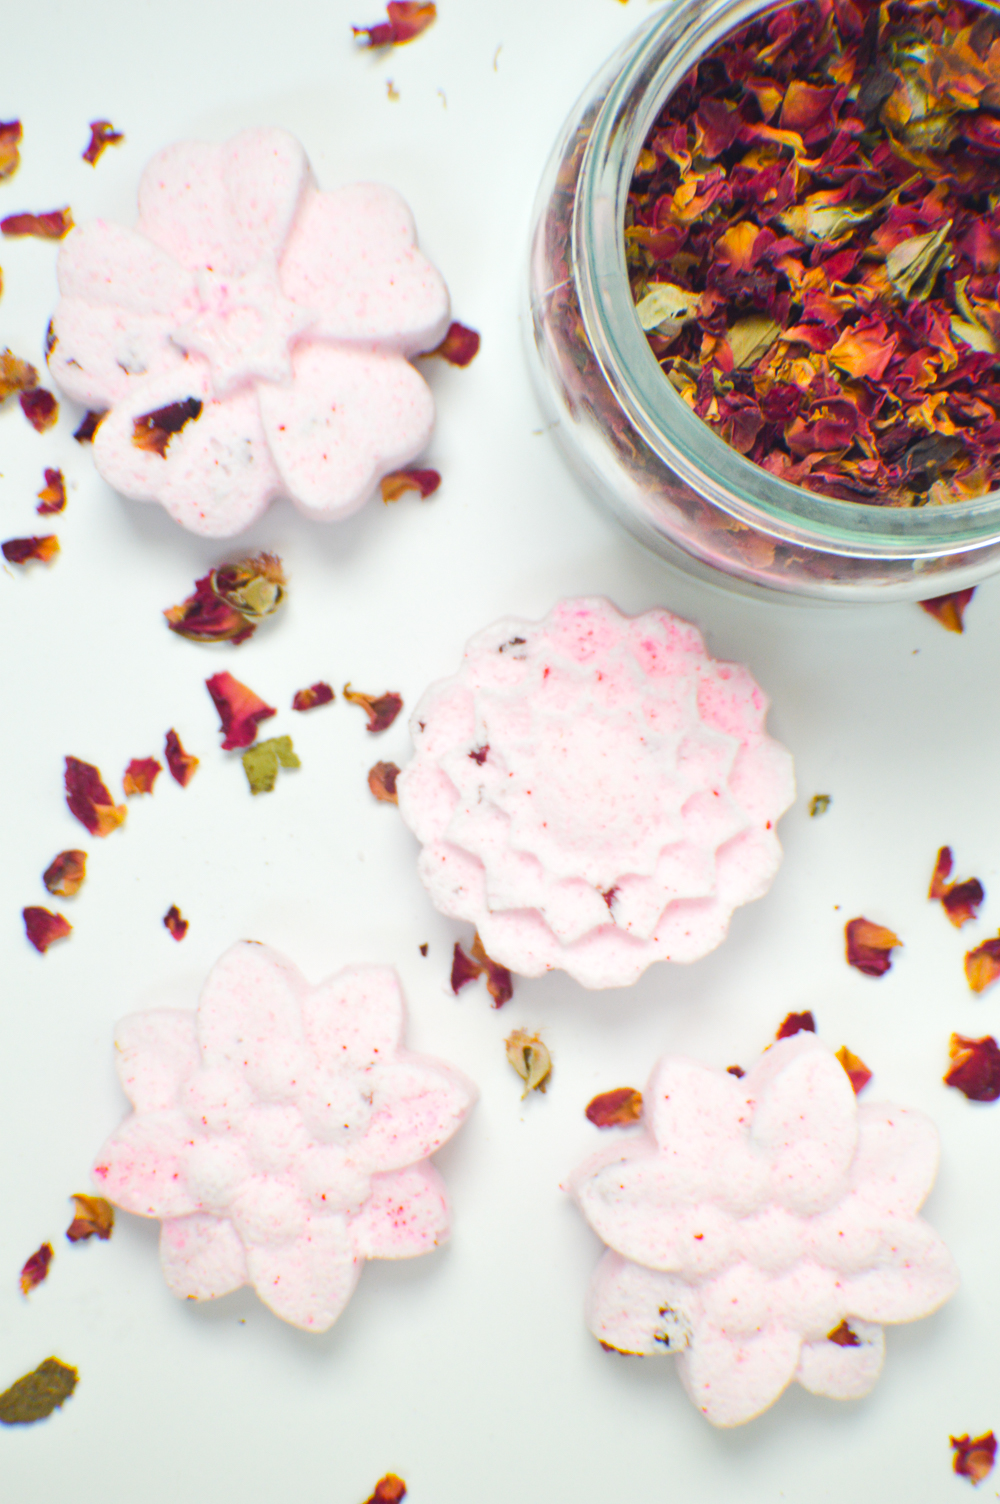 DIY Floral Bath Bombs | www.clubcrafted.com